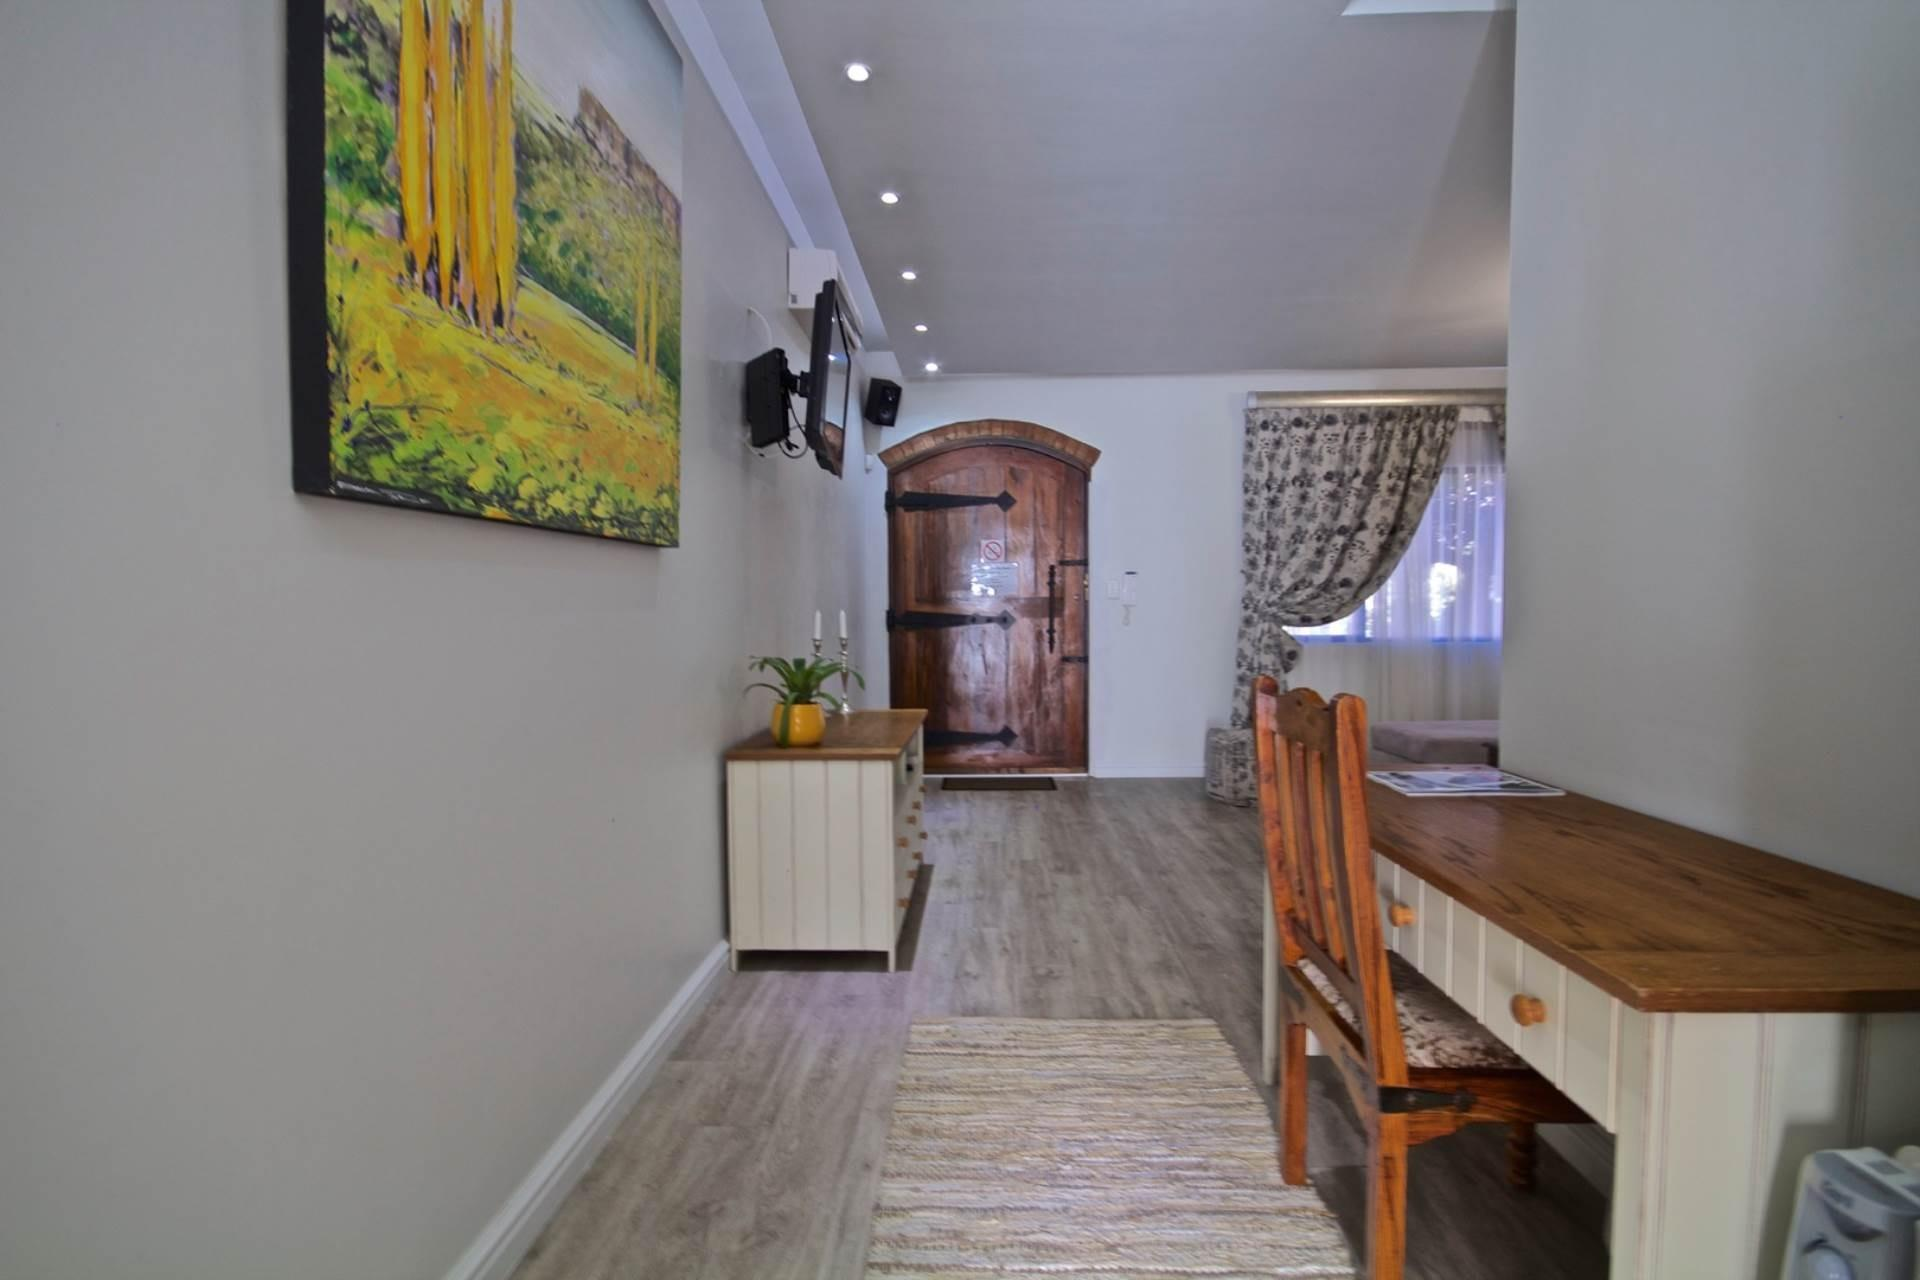 5 Bedroom House For Sale in Sunset Beach